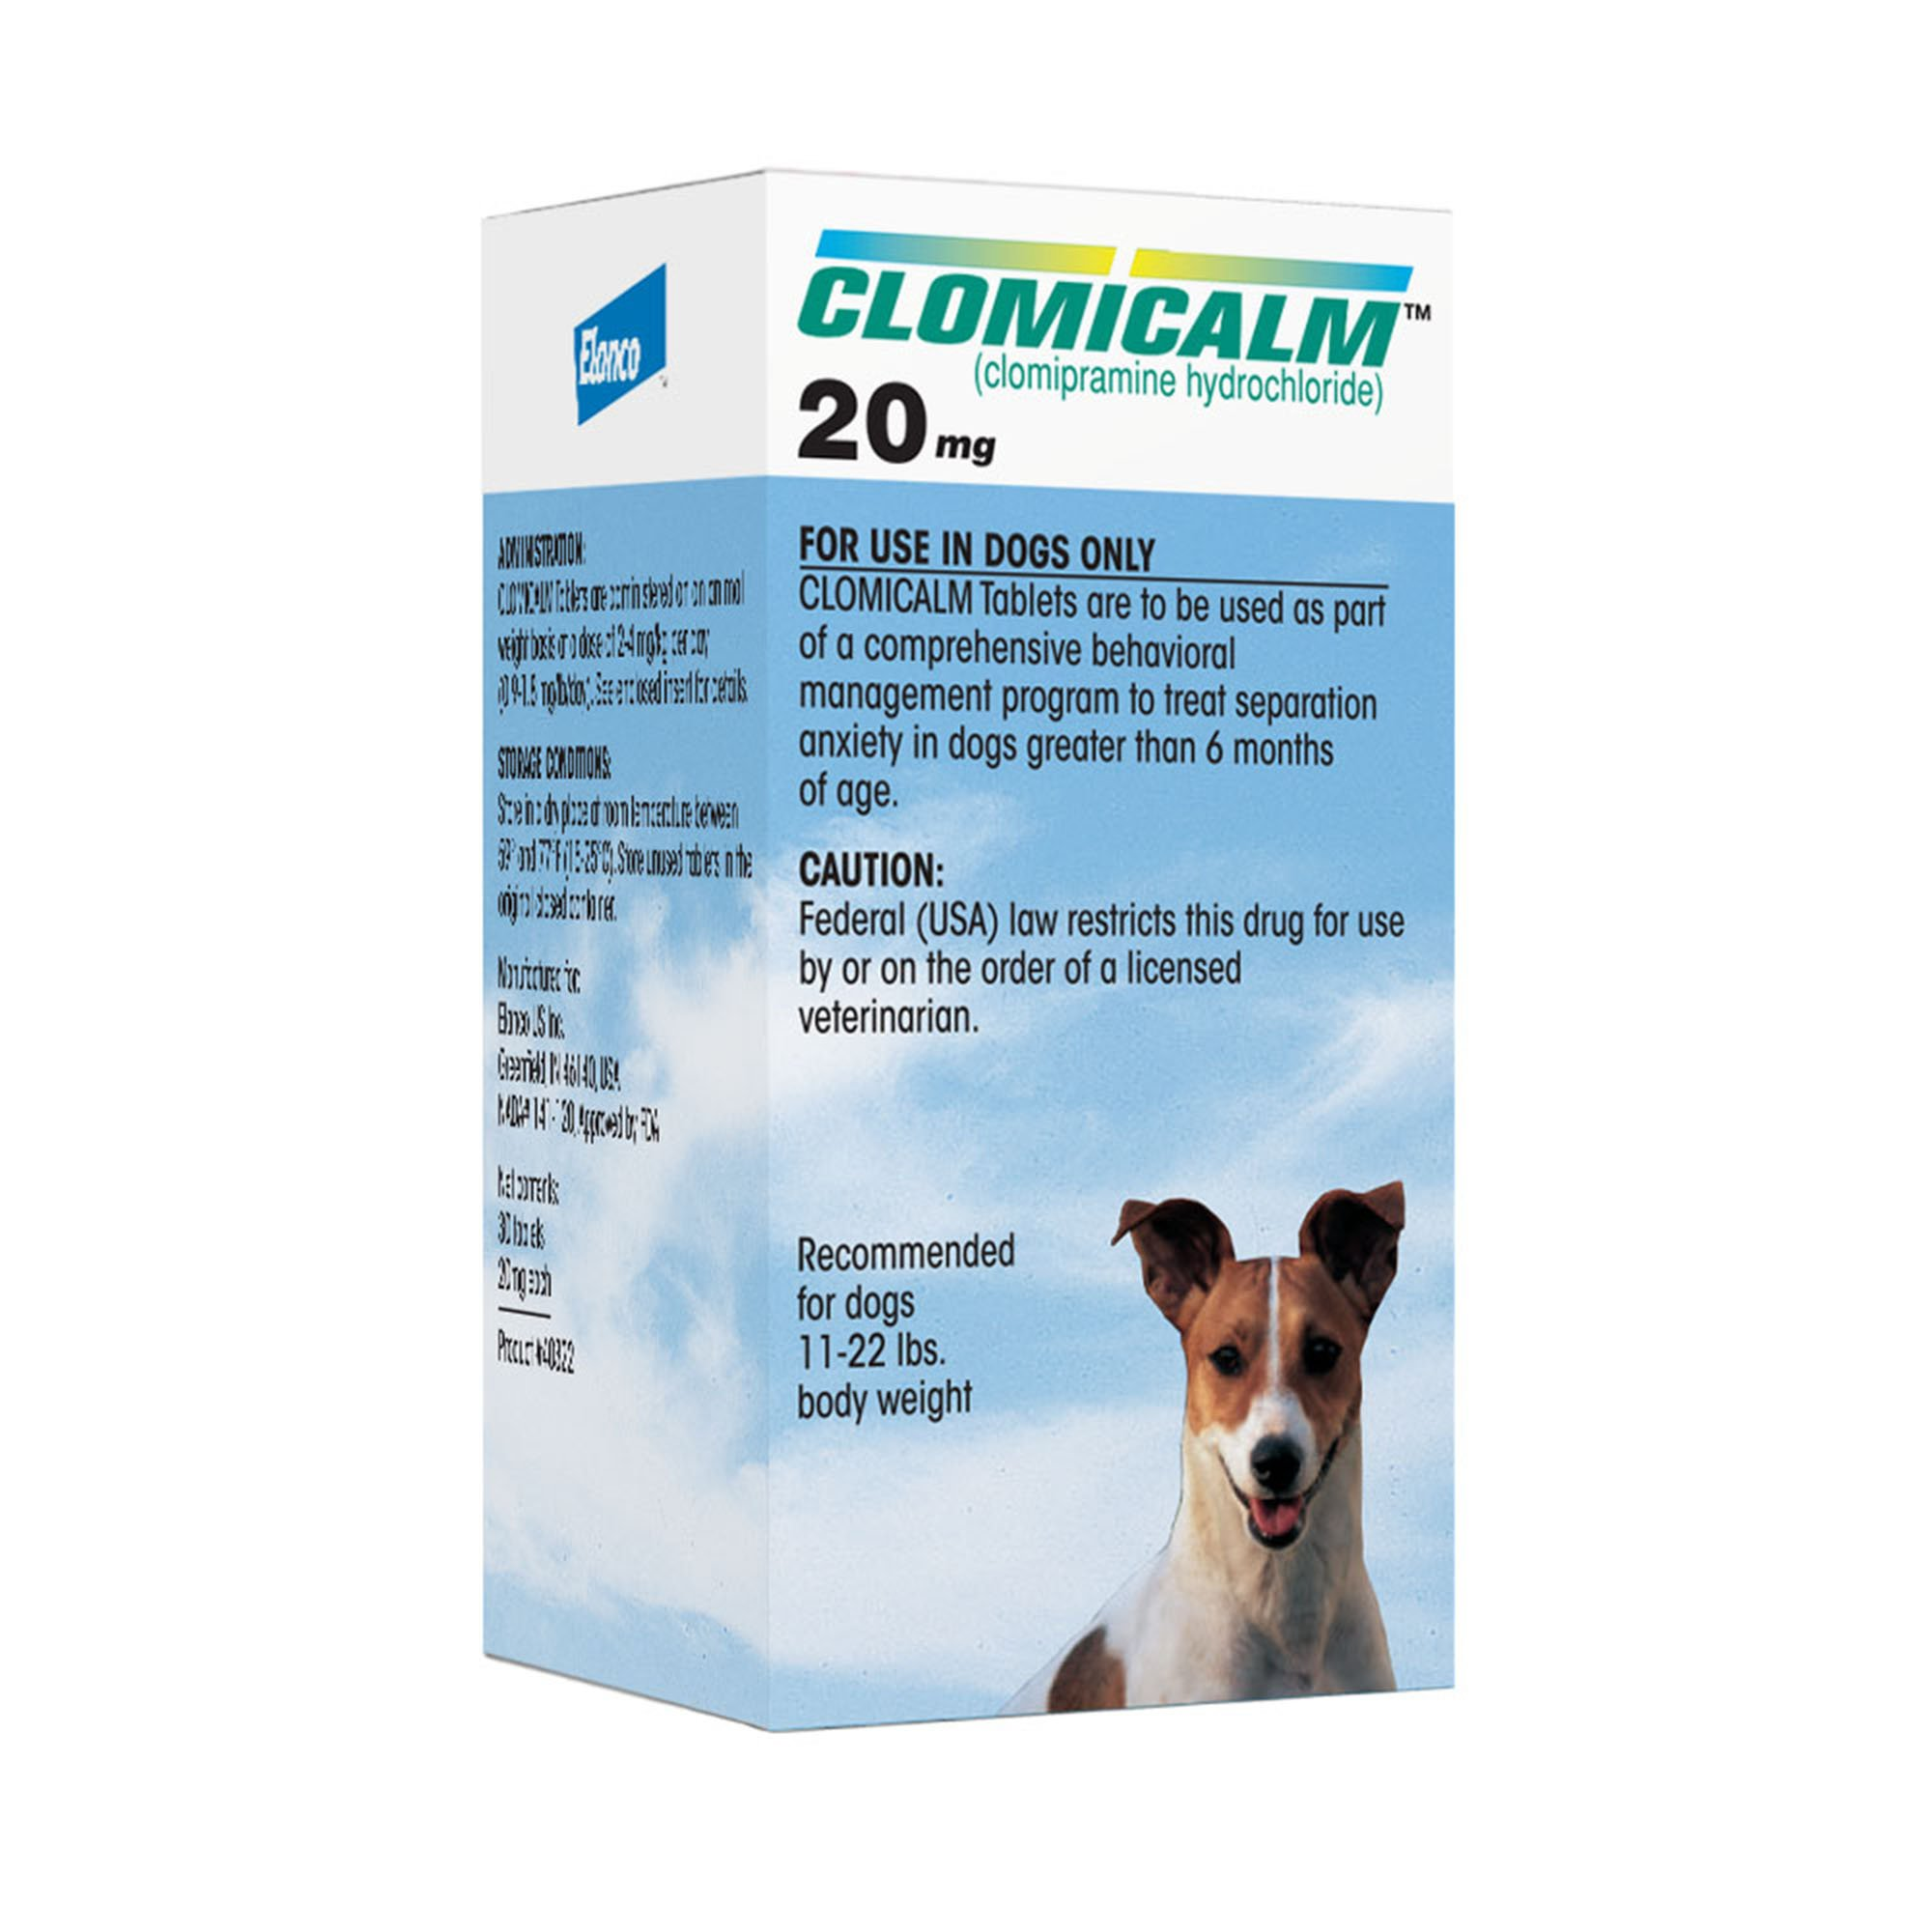 6e9be483ff5ef Clomicalm 20 mg Tablets for Dogs | Petco